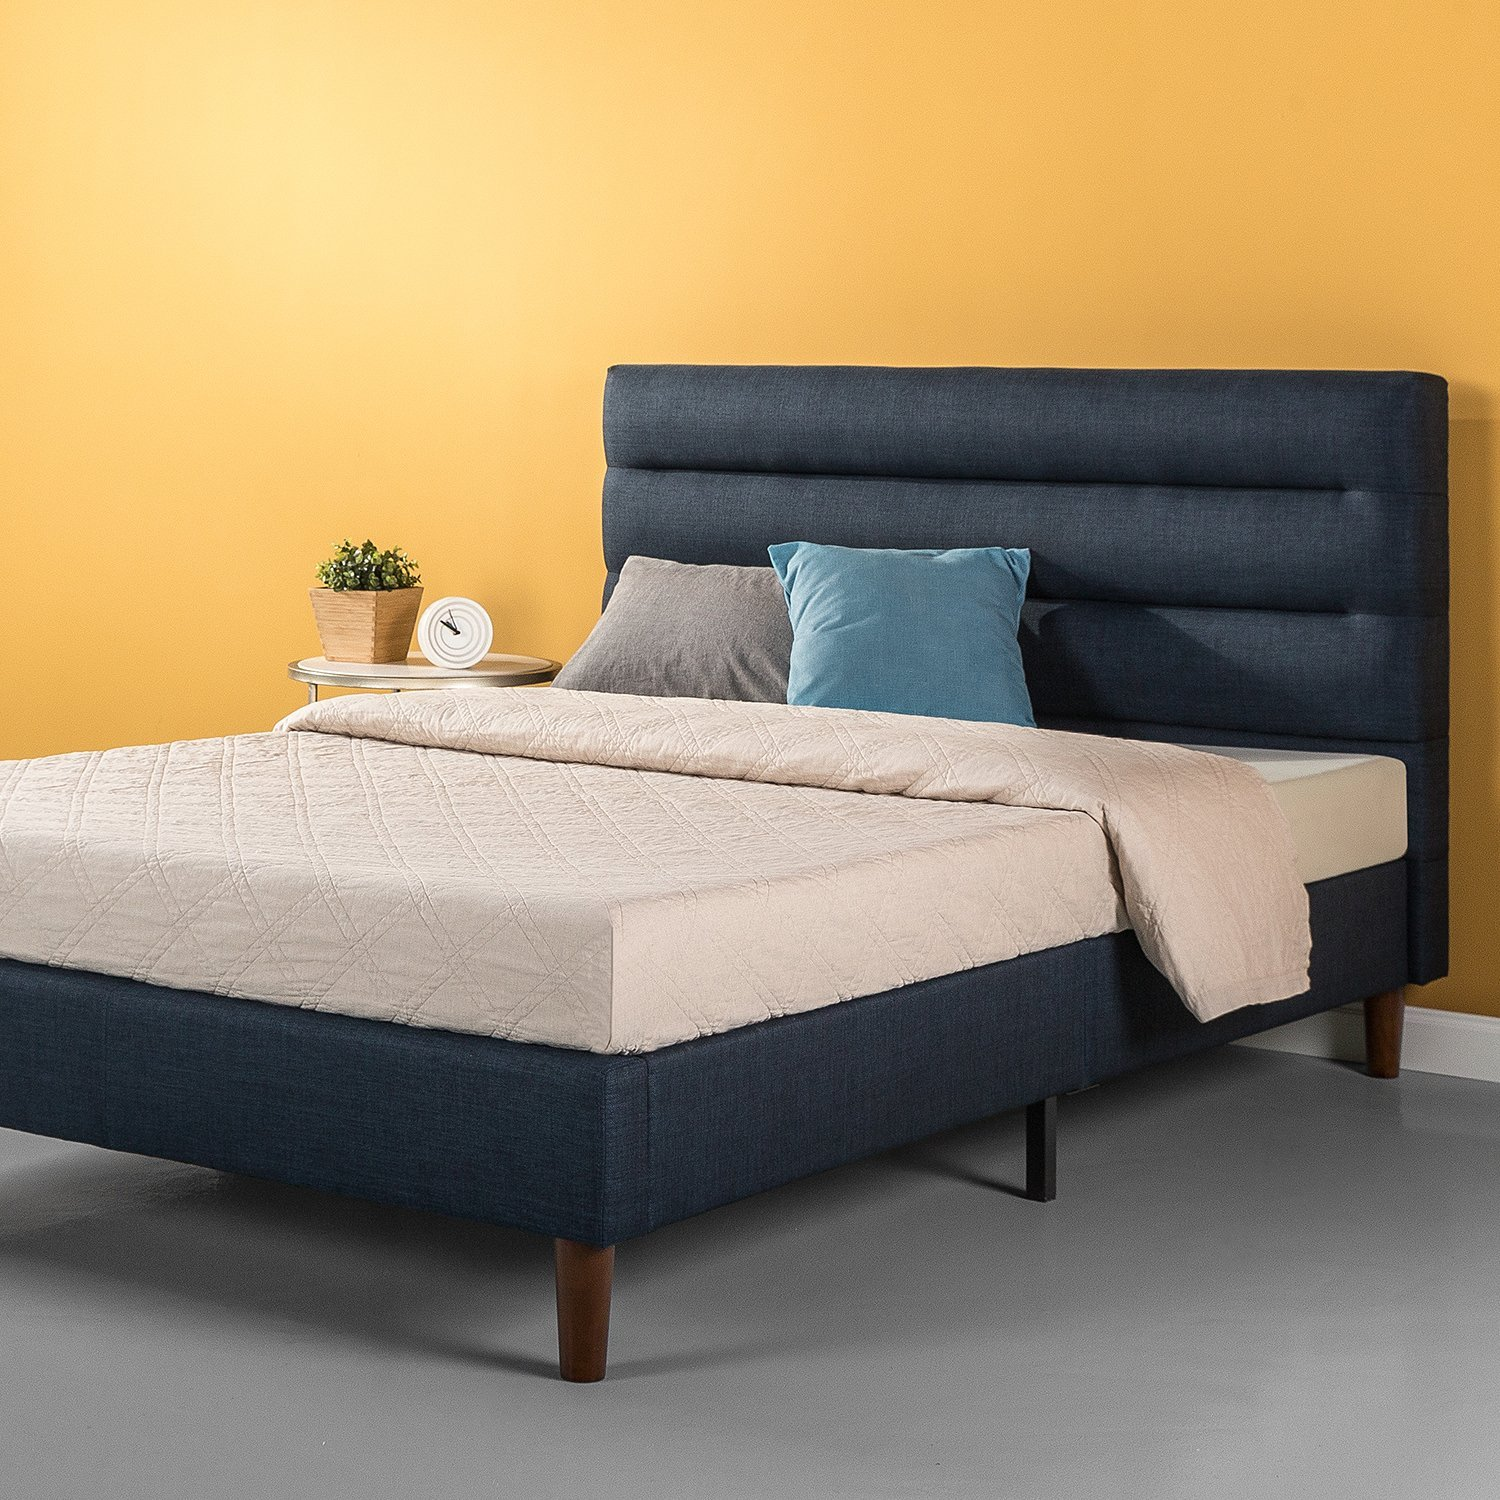 Zinus Upholstered Horizontally Cushioned Platform Bed / Mattress Foundation / Easy Assembly / Strong Wood Slat Support / Navy, Queen